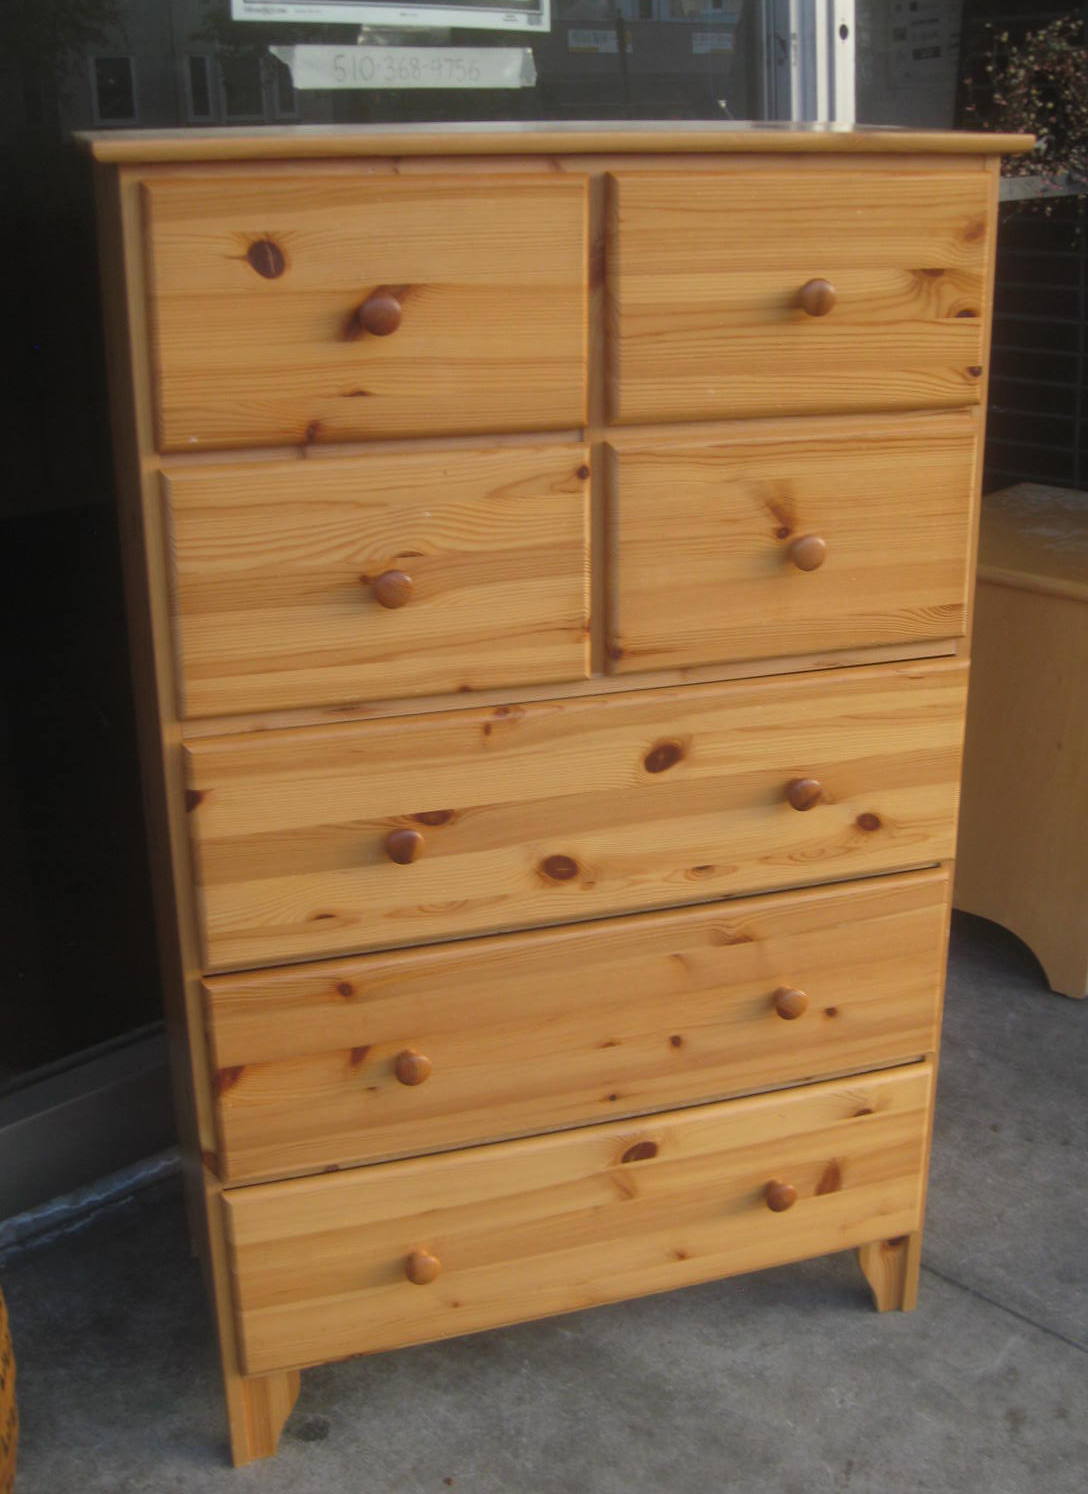 UHURU FURNITURE & COLLECTIBLES: SOLD Knotty Pine Dresser - $100